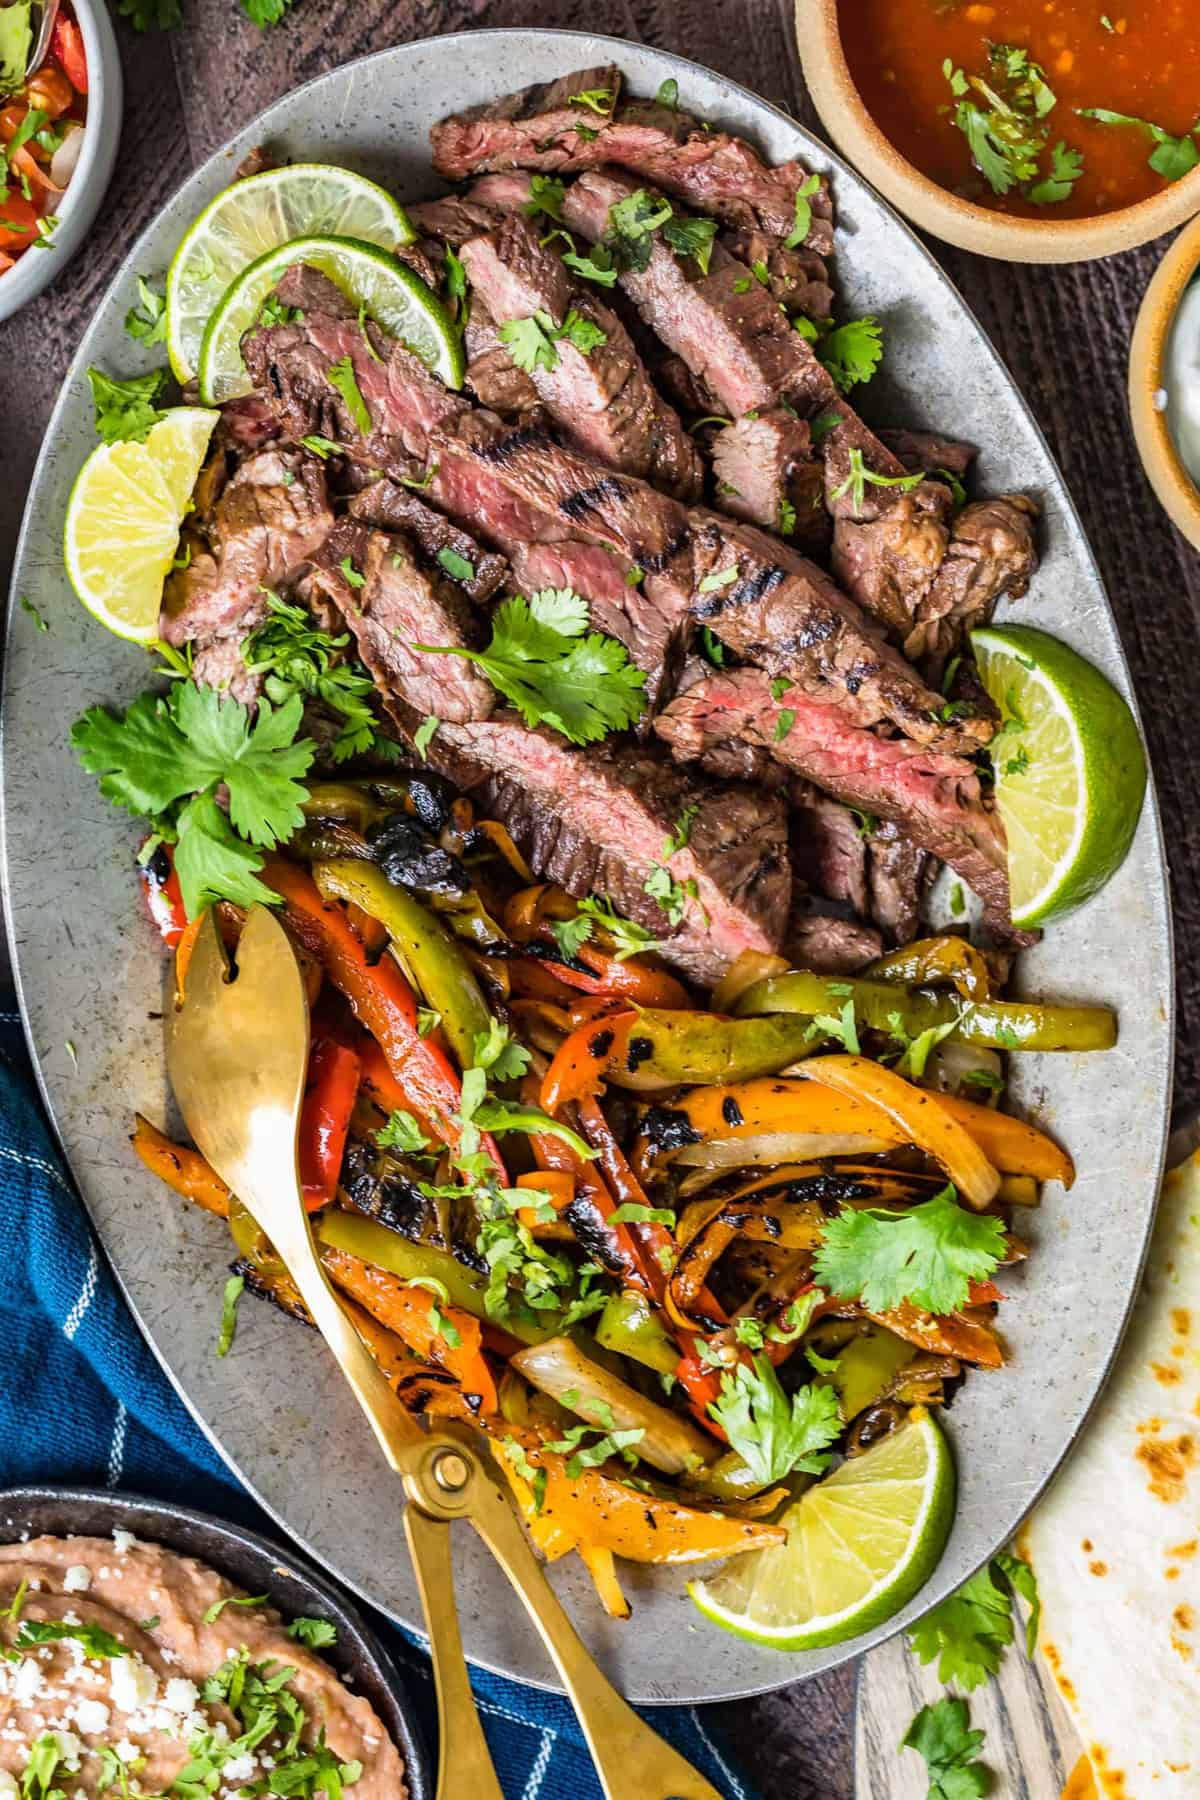 Grilled meat and vegetables on a large serving plate